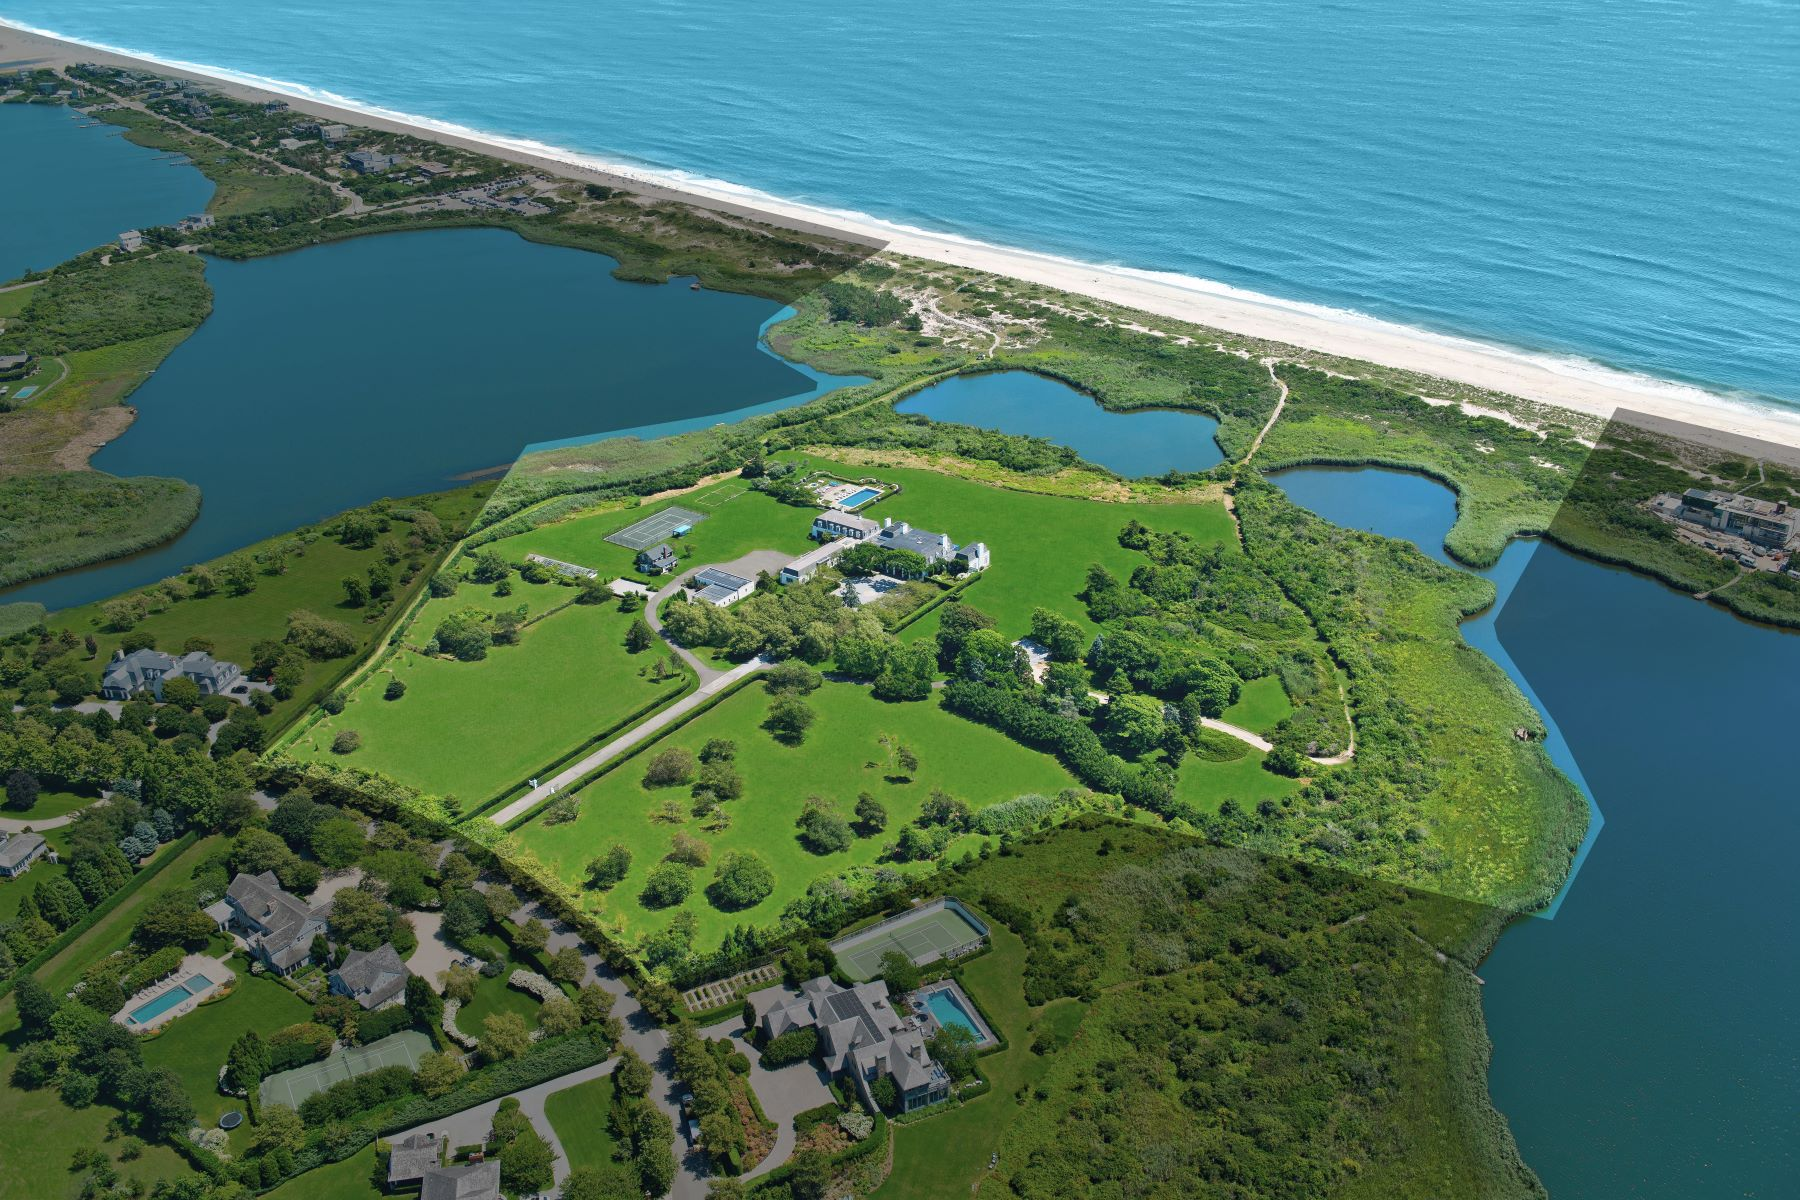 Property for Sale at Oceanfront Southampton Estate 90 Jule Pond Drive, Southampton, New York 11968 United States